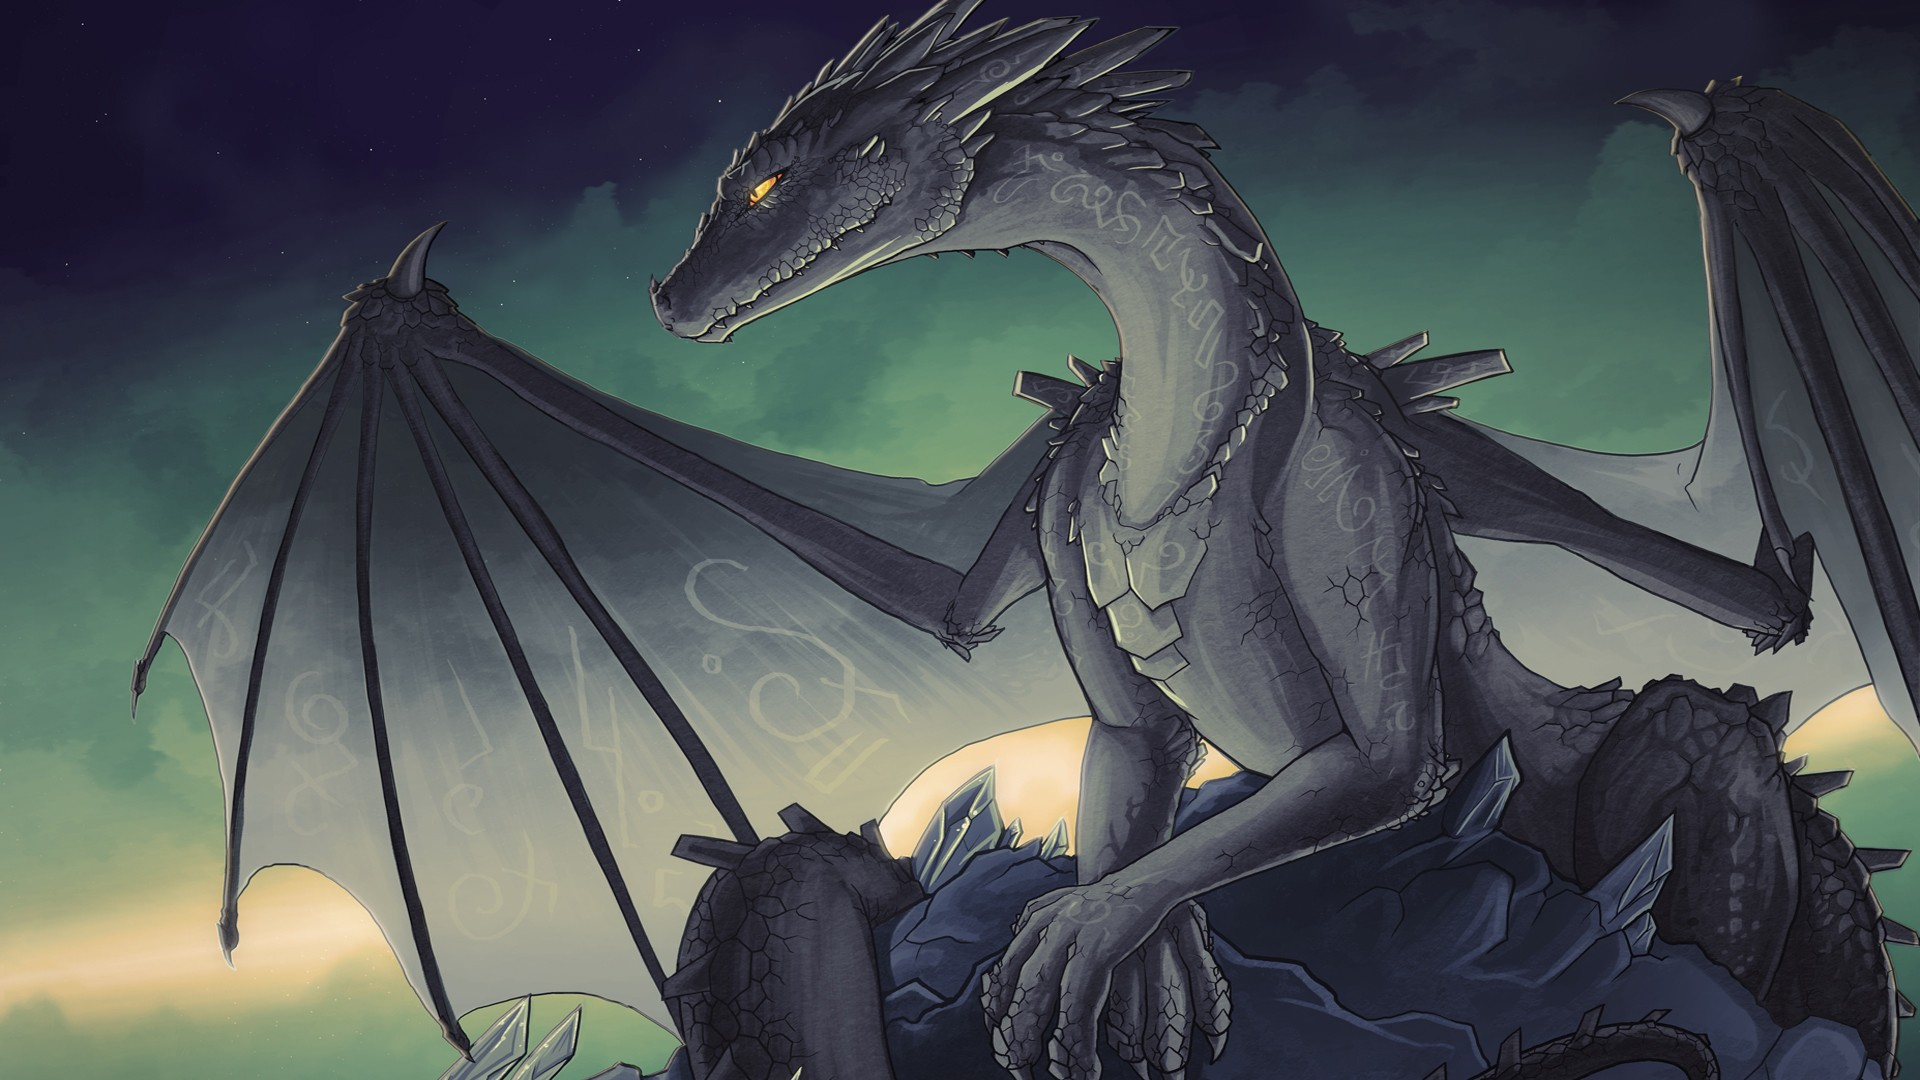 Top 50 Hd Dragon Wallpapers, Images, Backgrounds, Desktop Wallpapers High Quality-2342